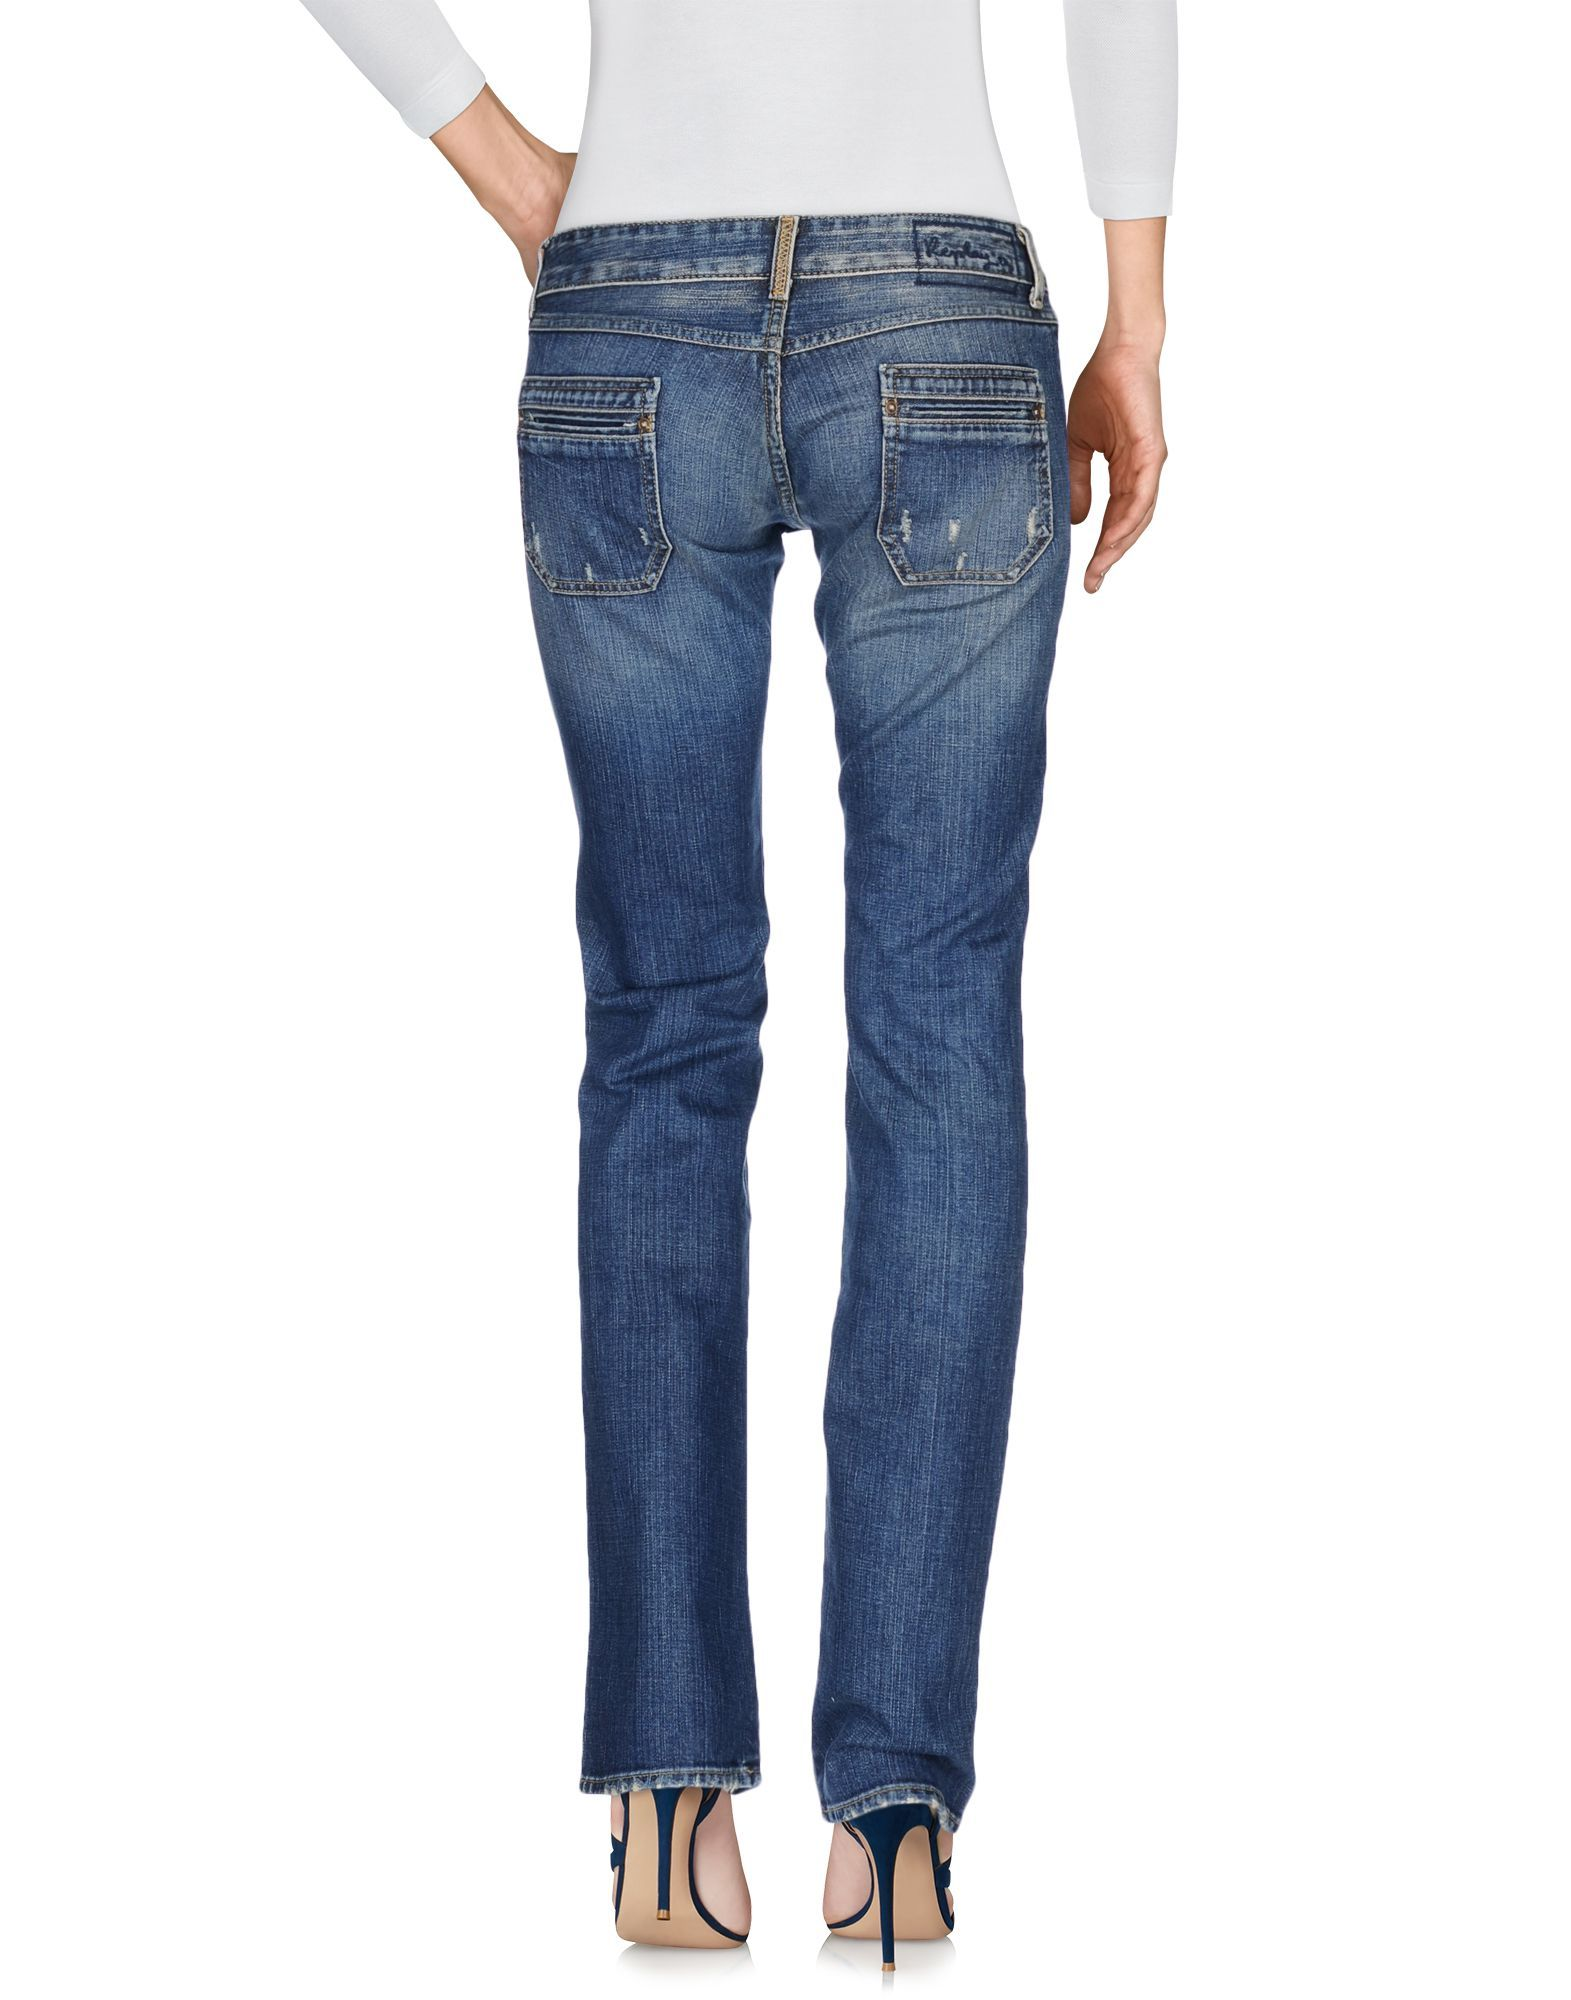 Replay Blue Cotton Jeans